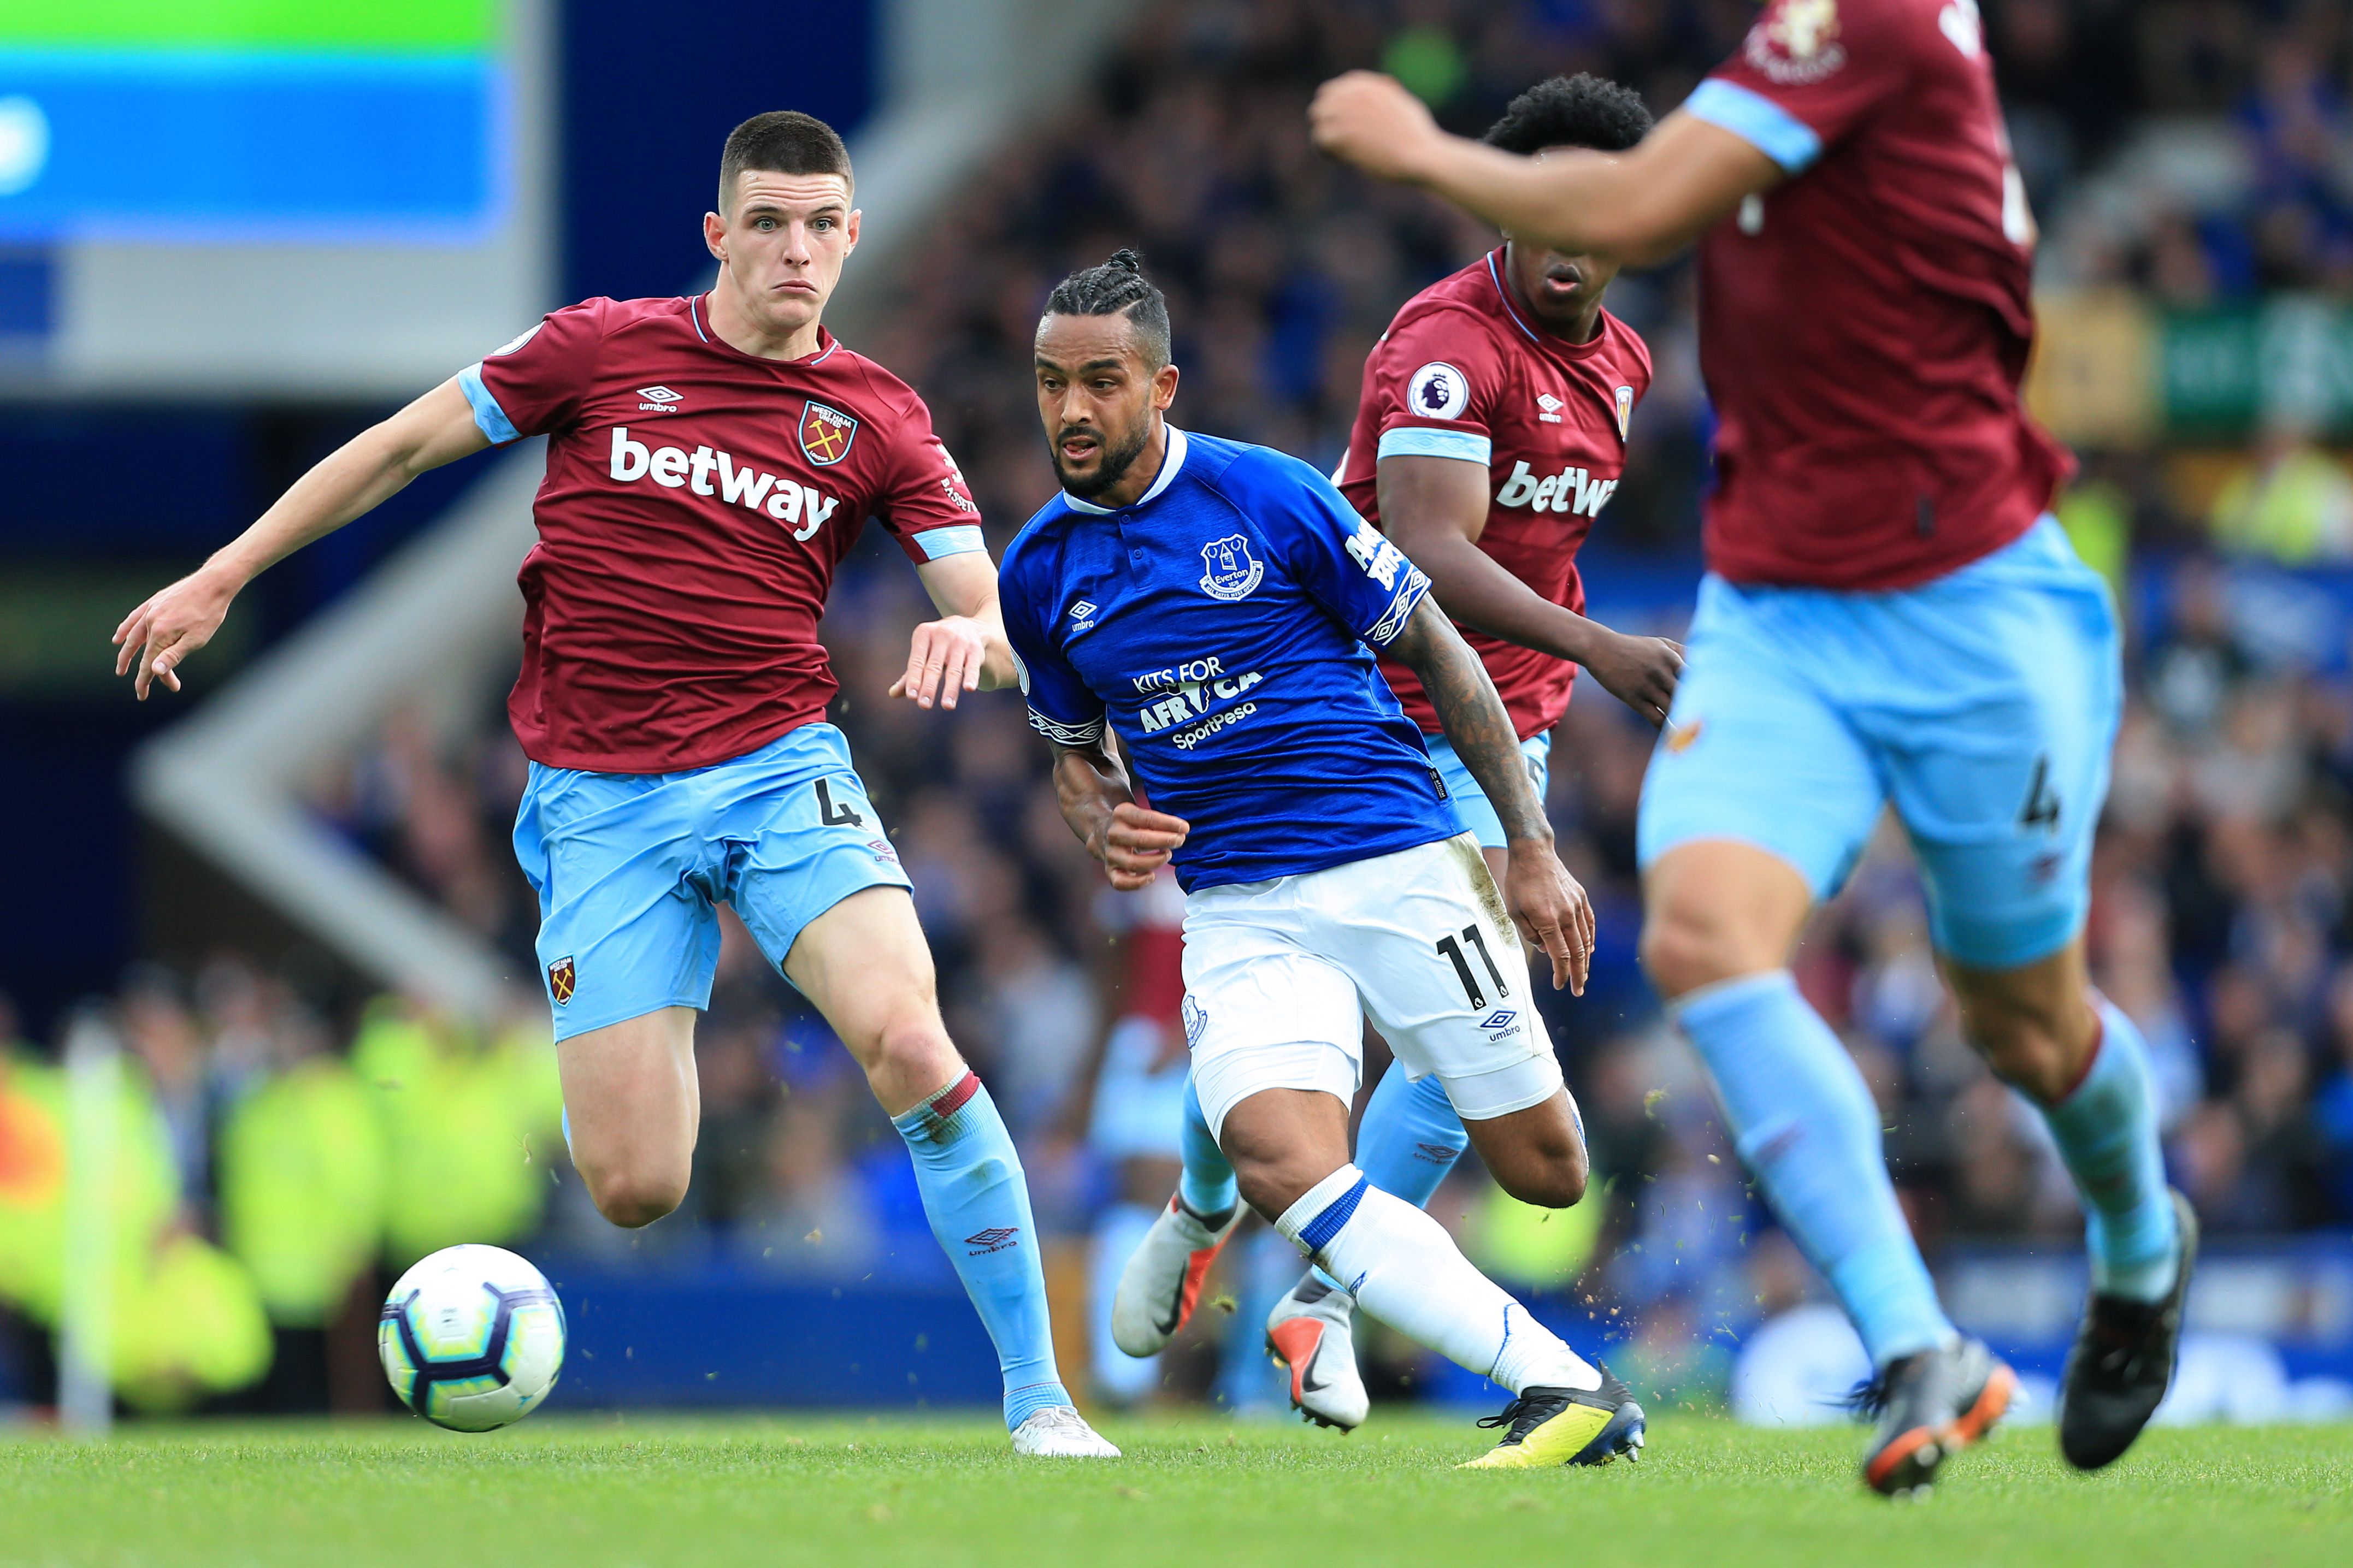 Everton vs West Ham: The Opposition View